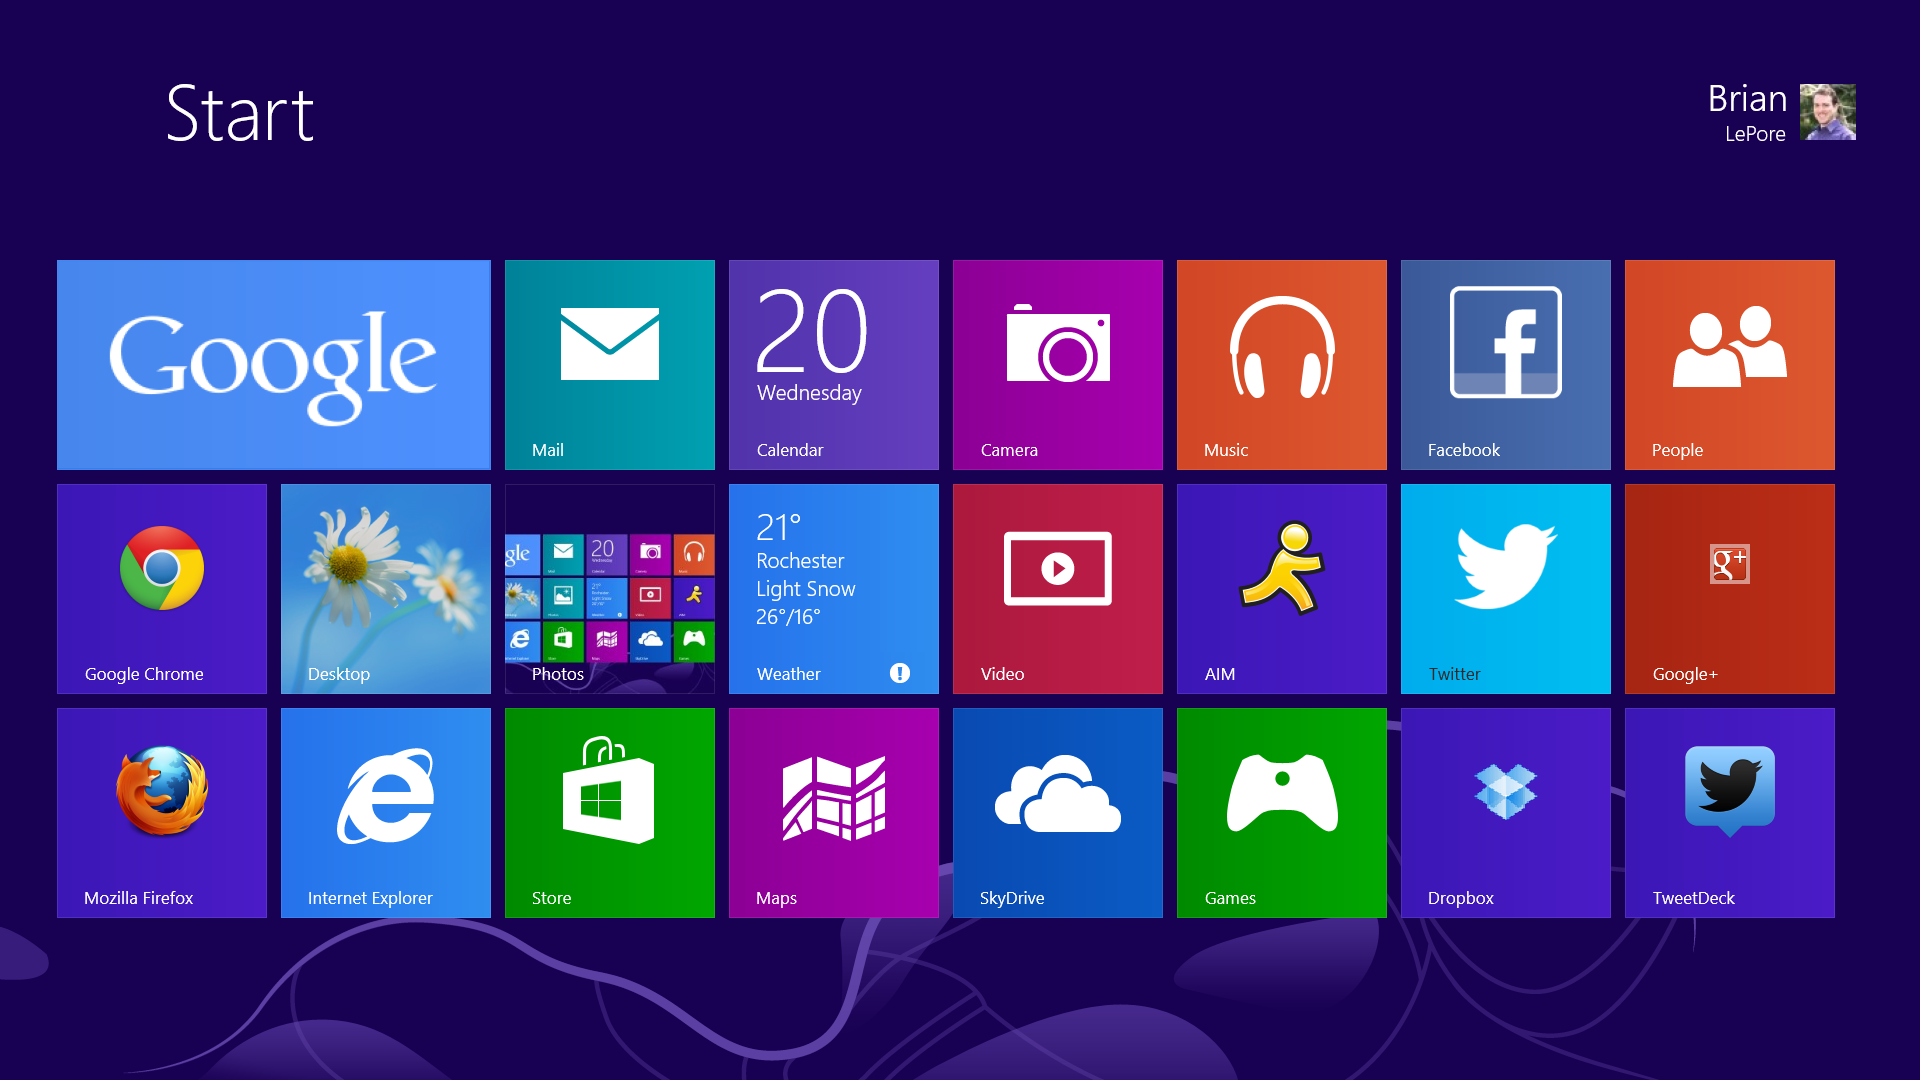 Windows 8 Start Screen.